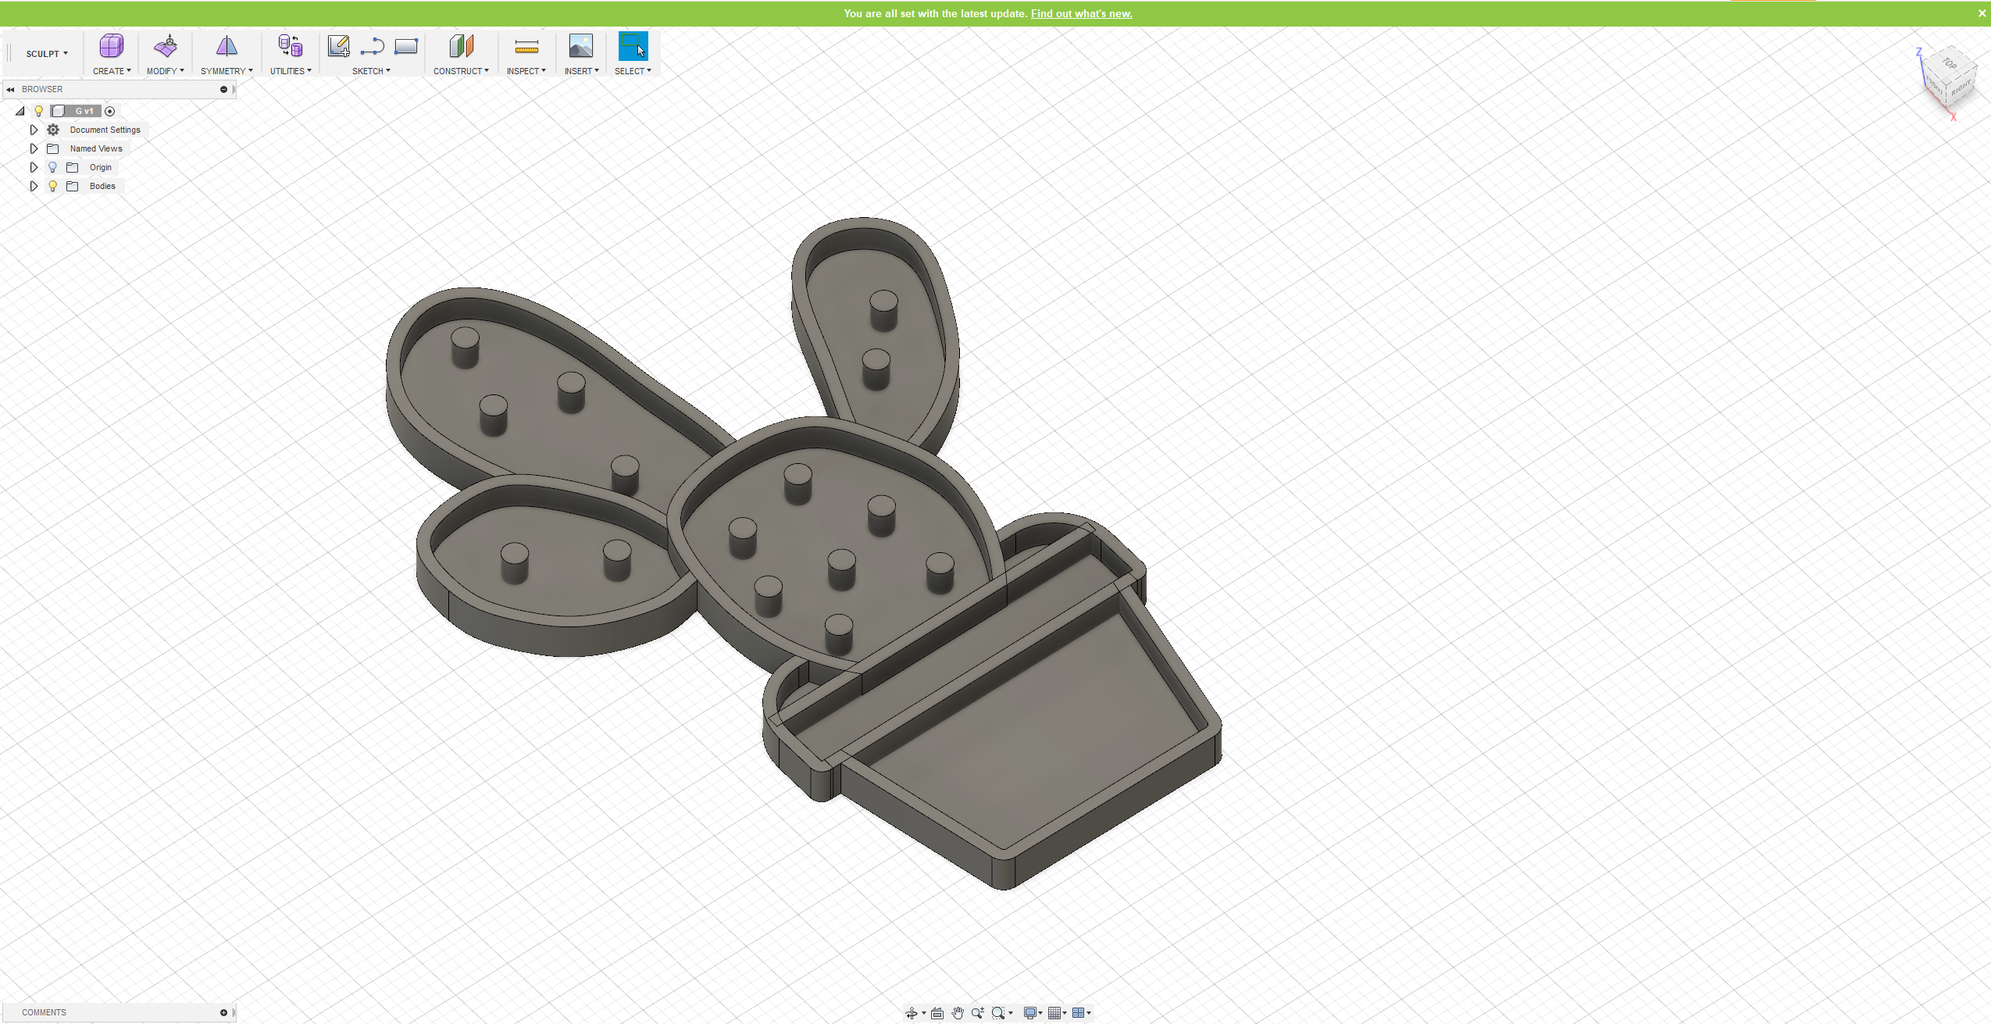 3D Printed Moulds